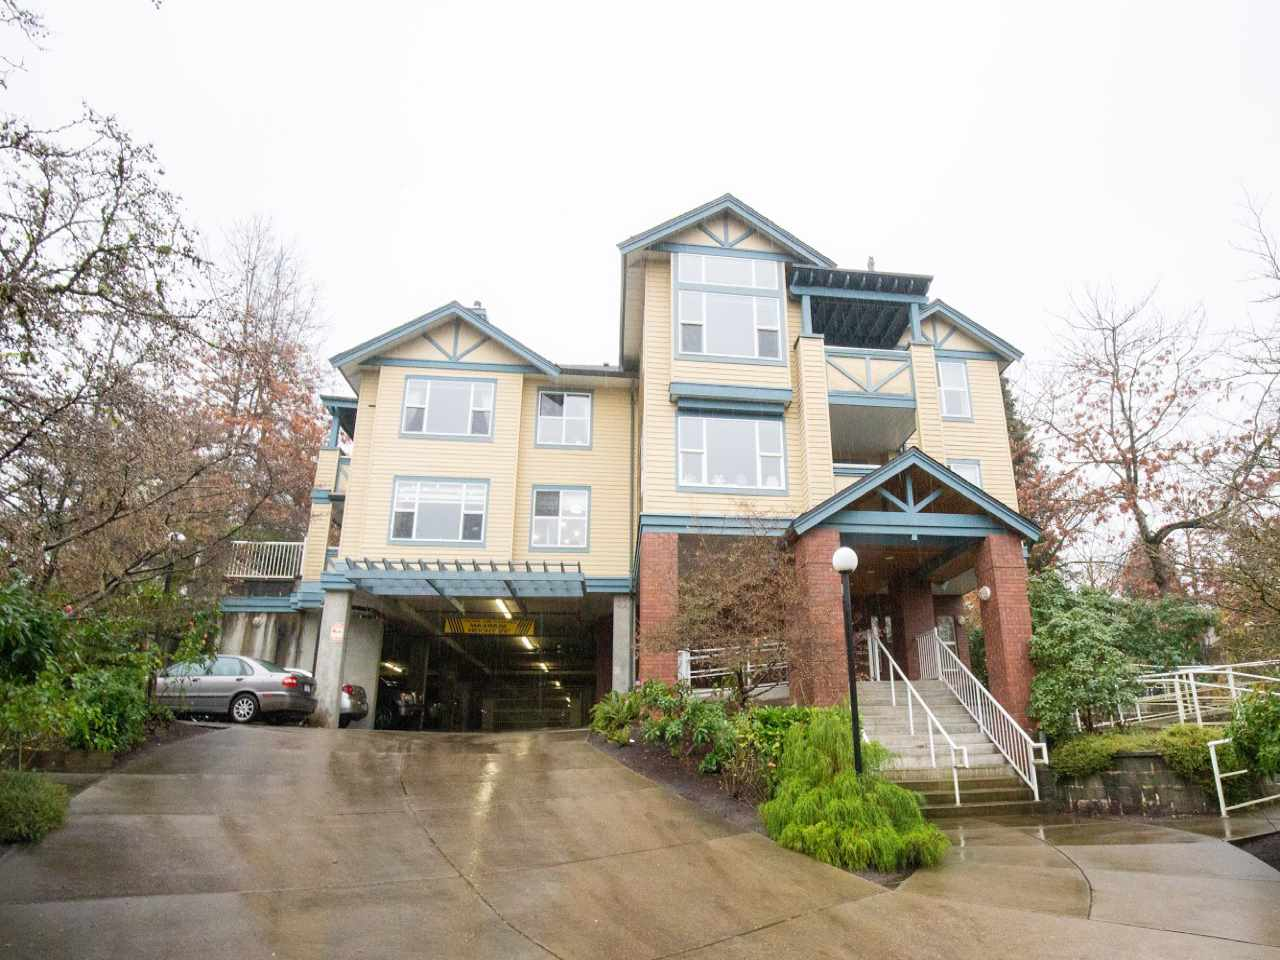 The Legends in the prestigious Oaklands / Deer Lake Park community. Top floor unit with extended height ceilings by the windows. This 1 bedroom home is a blank canvas with huge potential for a remodel. Low cost to ownership makes it perfect for a first time home buyer. Features include in-suite laundry, gas fireplace and 2 zone radiant in-floor heating. Strata fee includes heating, hot water and fireplace. 1 parking / 1 locker included. Walking distance to Deer Lake, Marlborough Elementary and Metrotown! Showings By Appointment Only.